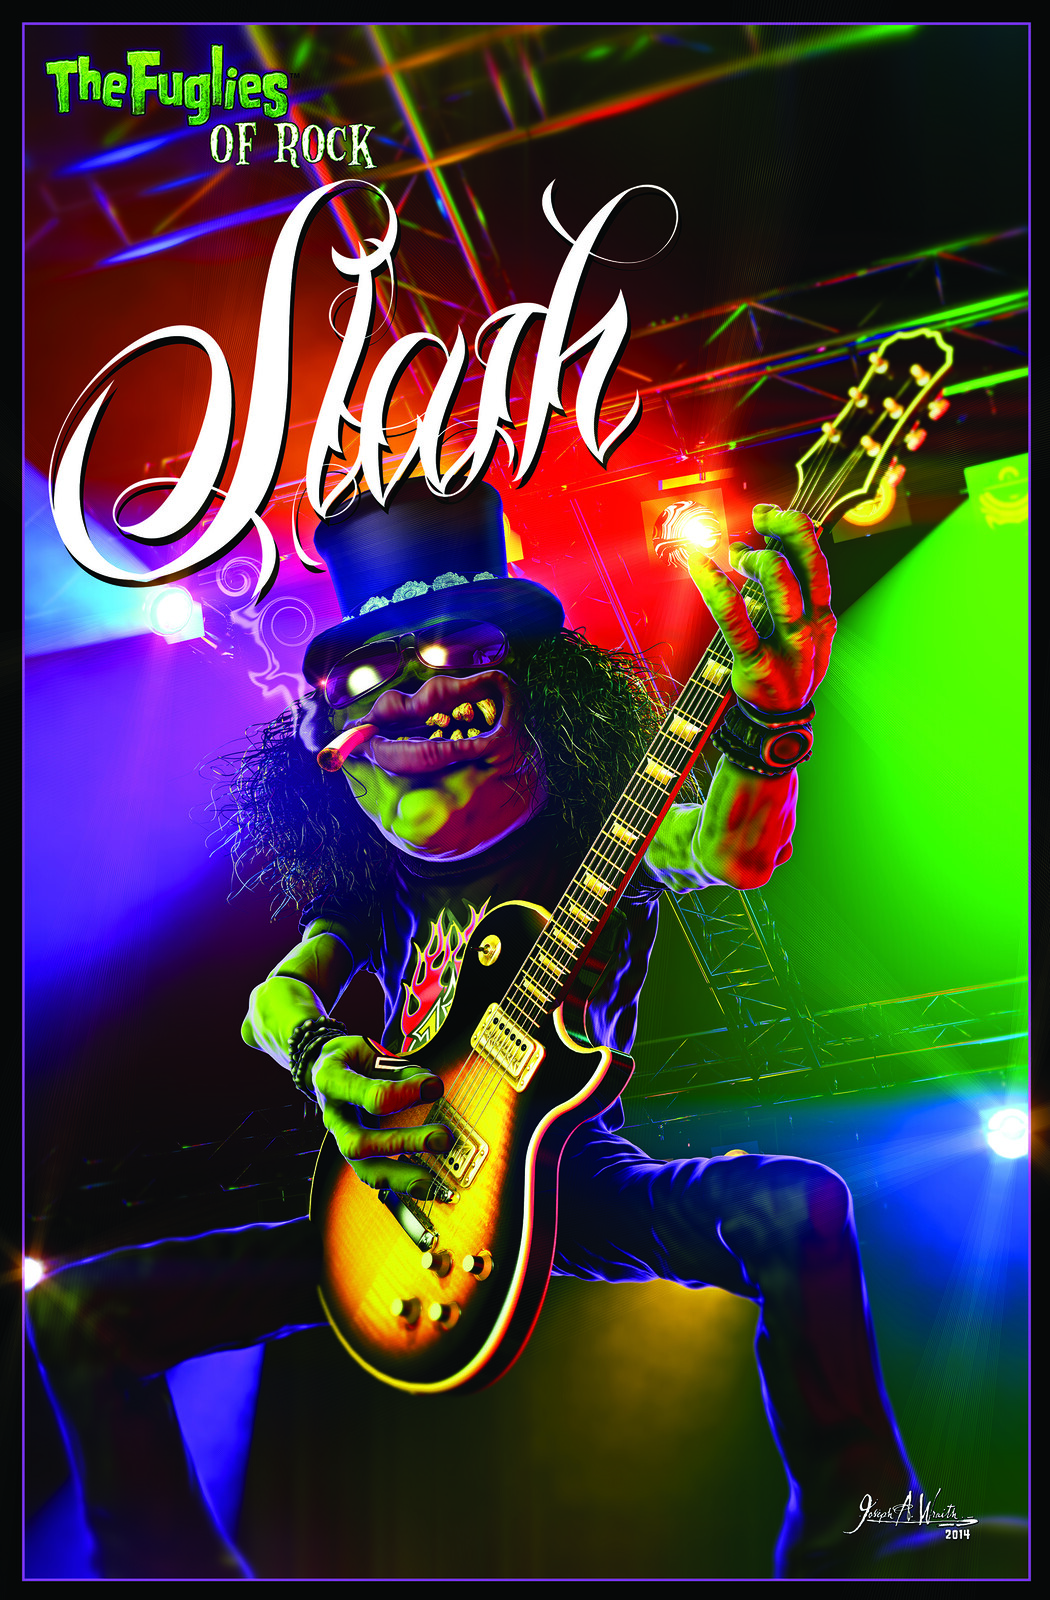 The Fuglies of Rock: Slash